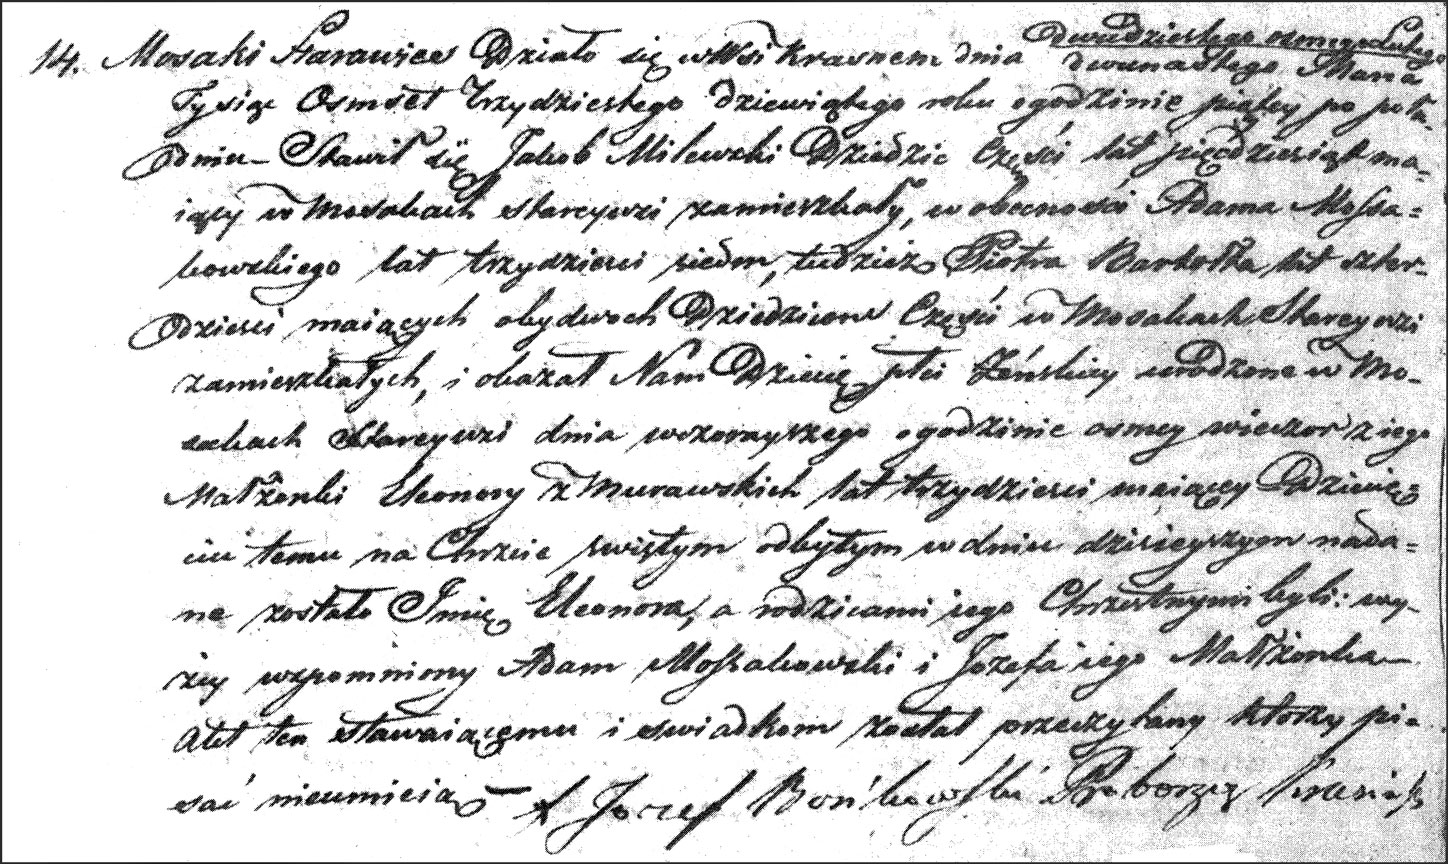 The Birth and Baptismal Record of Eleonora Milewska - 1839